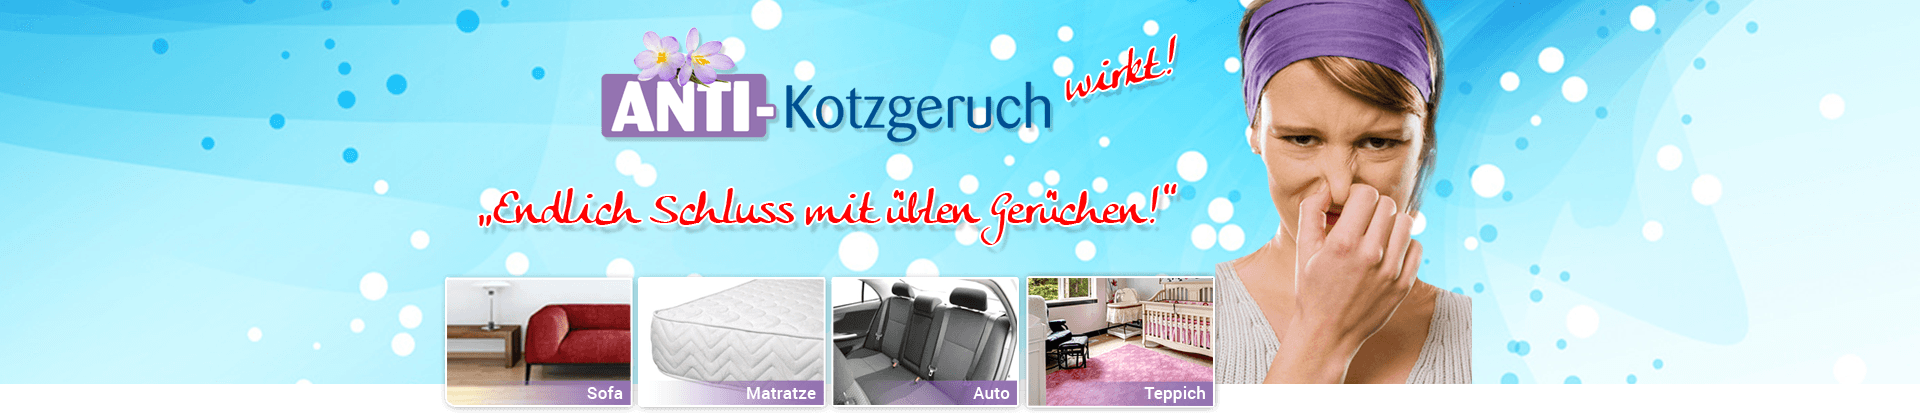 geruch von erbrochenem entfernen dauerhaft und zuverl ssig mit anti kotzgeruch. Black Bedroom Furniture Sets. Home Design Ideas